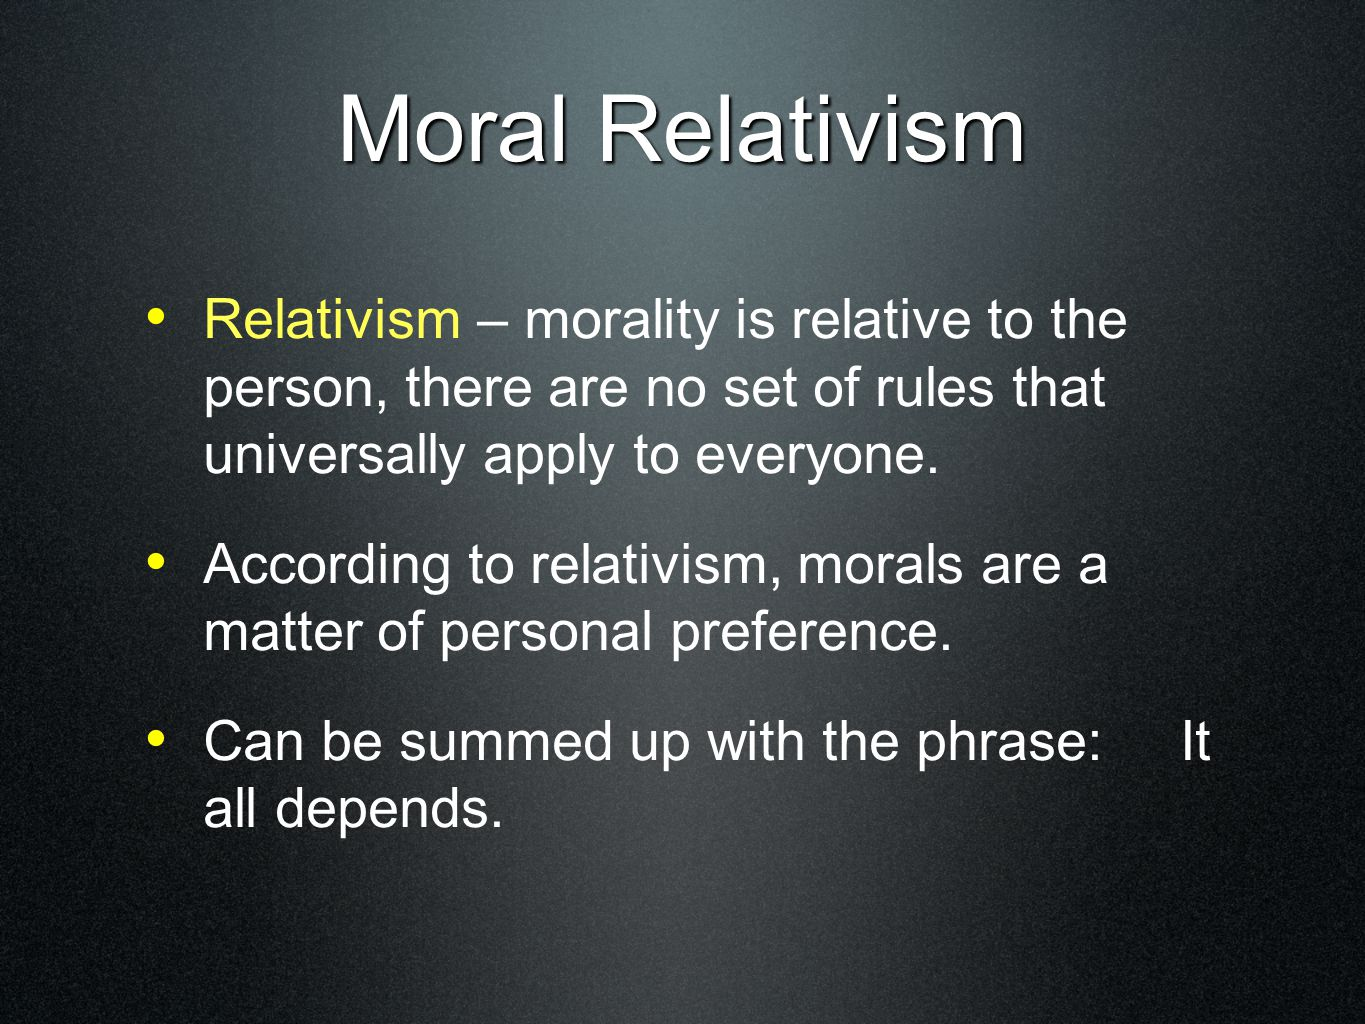 Relativism – morality is relative to the person, there are no set of rules that universally apply to everyone.